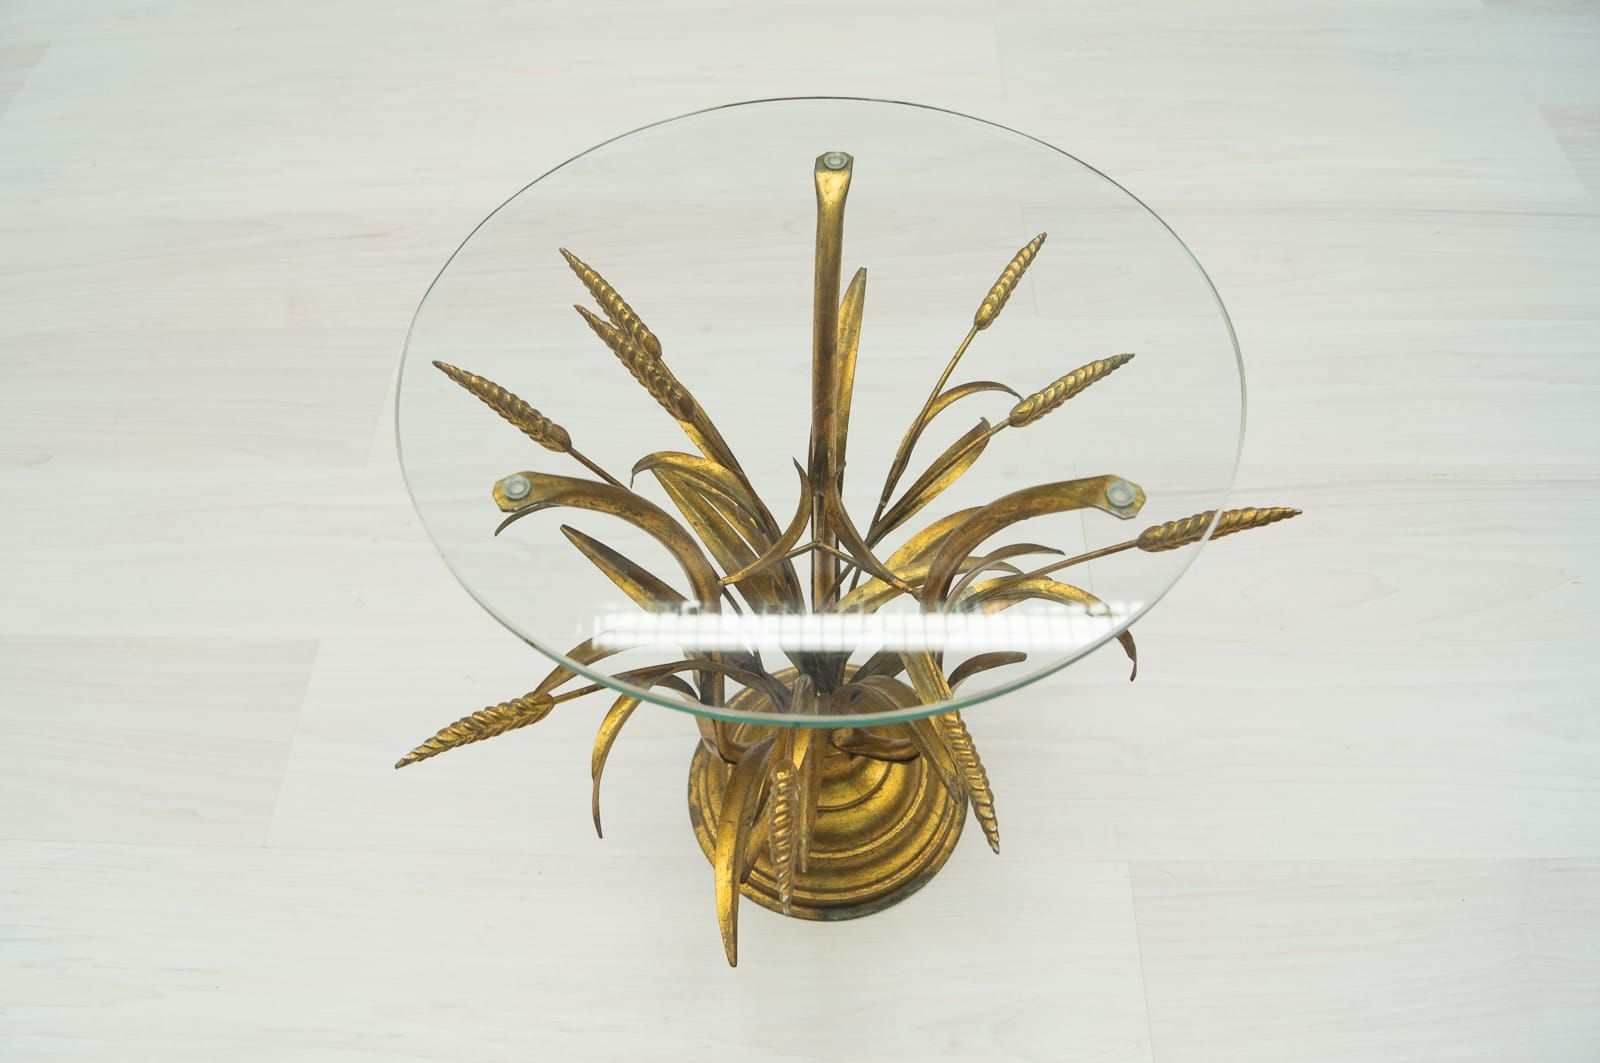 Mid century wheat sheaf coffee table irish antique dealers - Hollywood Regency Wheat Sheaf Side Table In Gold 1960s